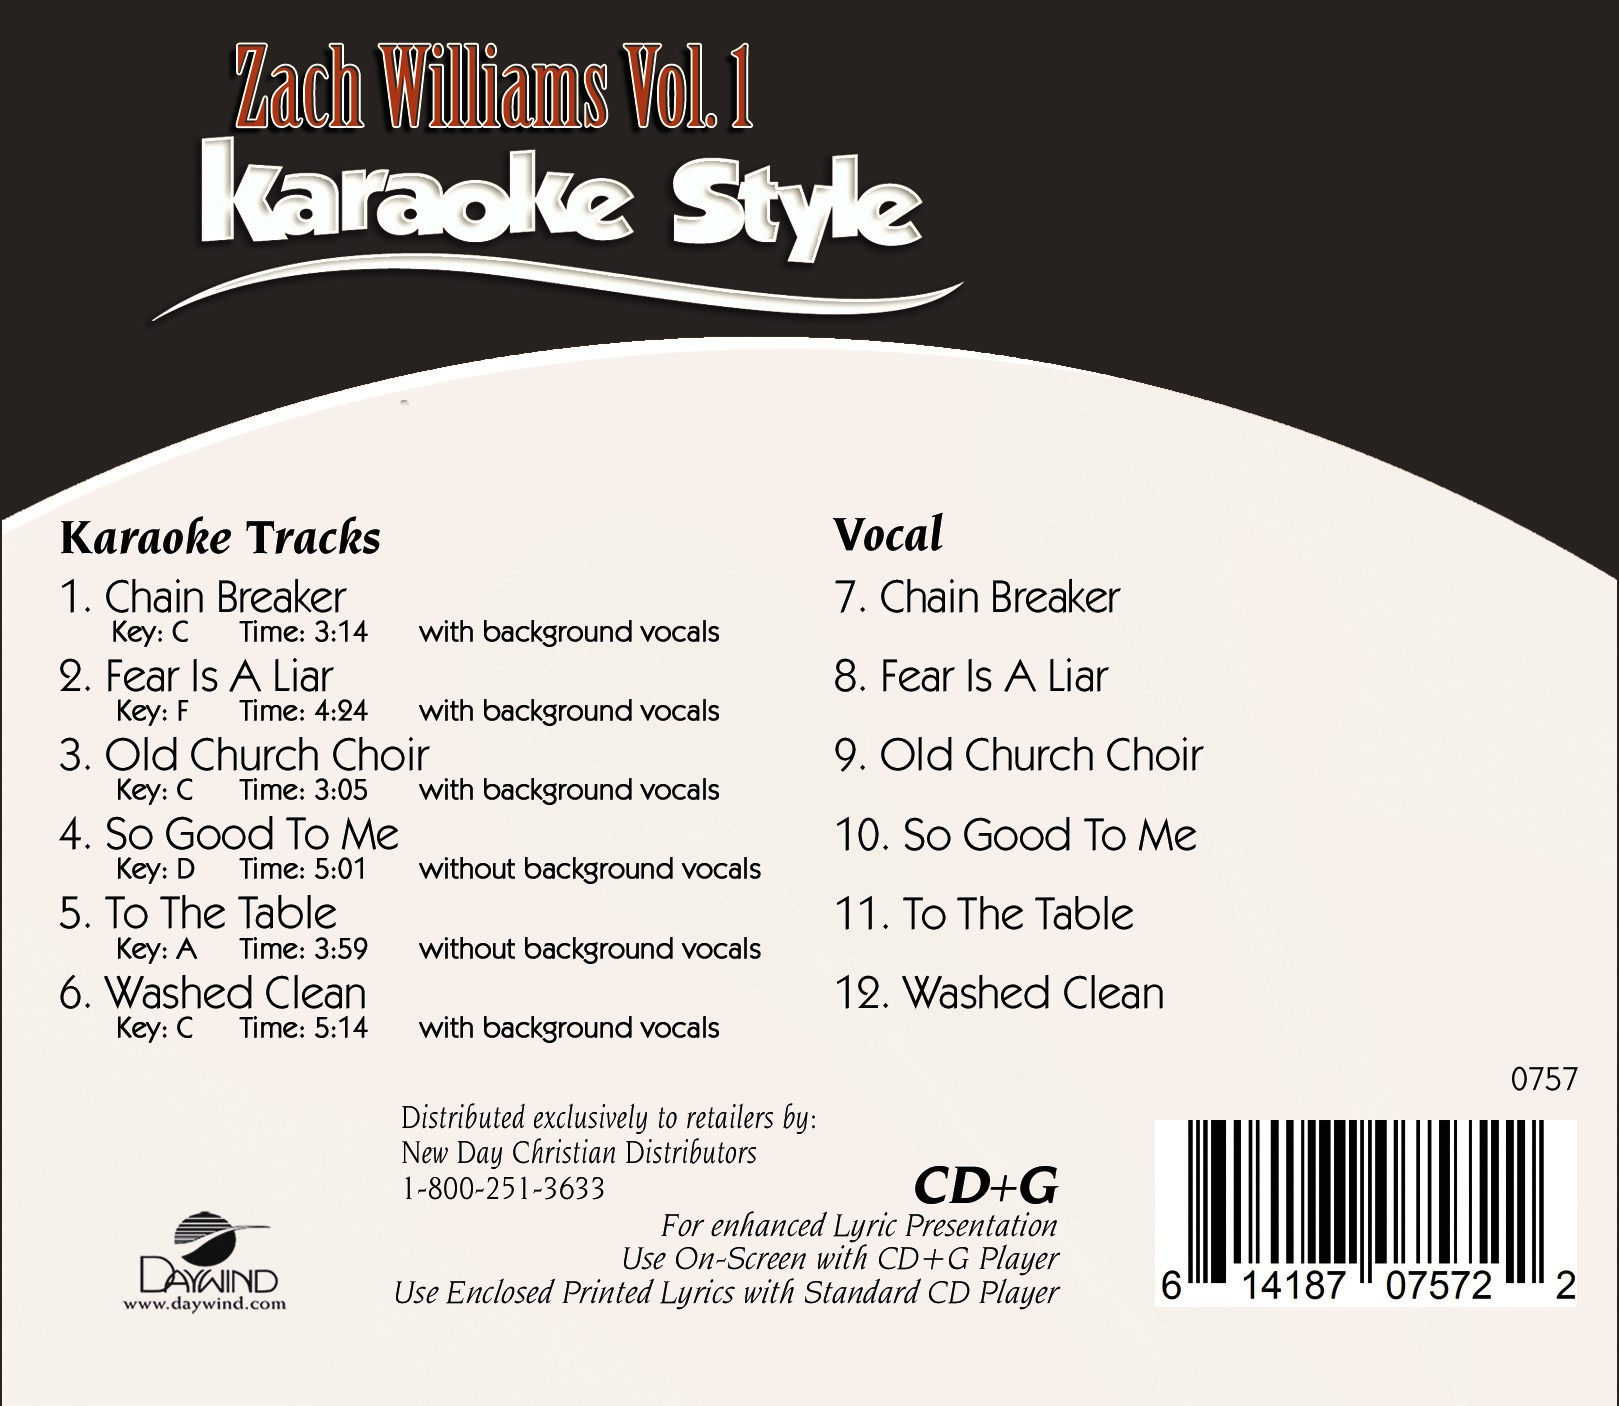 Karaoke Style Zach Williams Vol 1 Karaoke Daywind Com